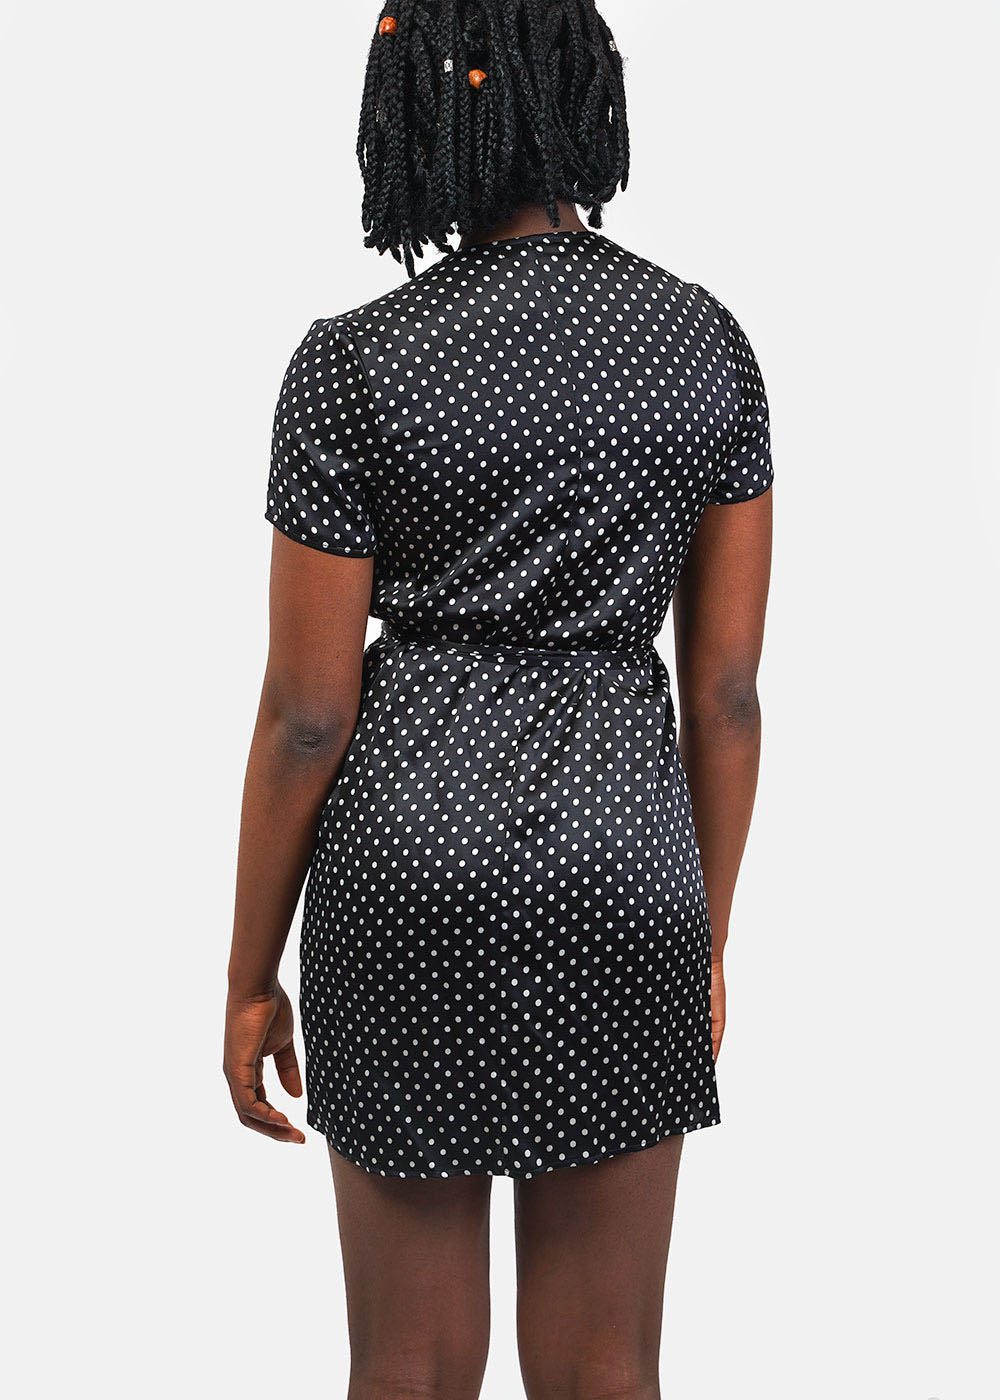 ef0a321f06c Zia Dress in Polka Dot by CIAO LUCIA | New Classics Studios